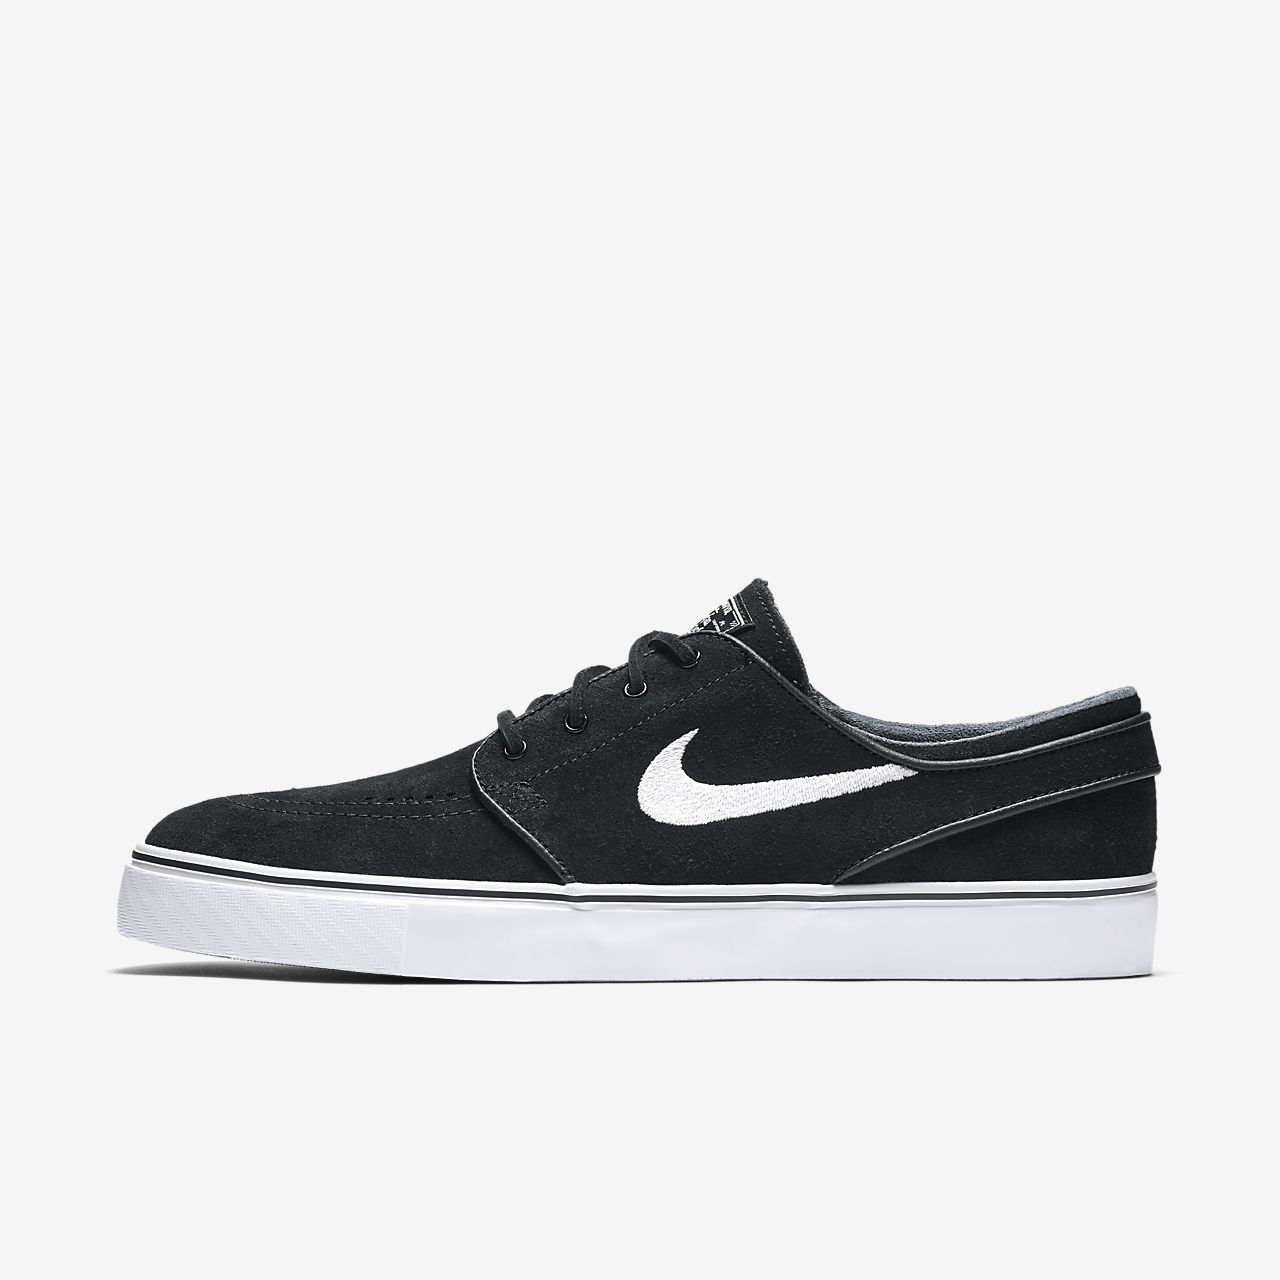 Chaussures Nike SB Collection 40 grises Casual homme